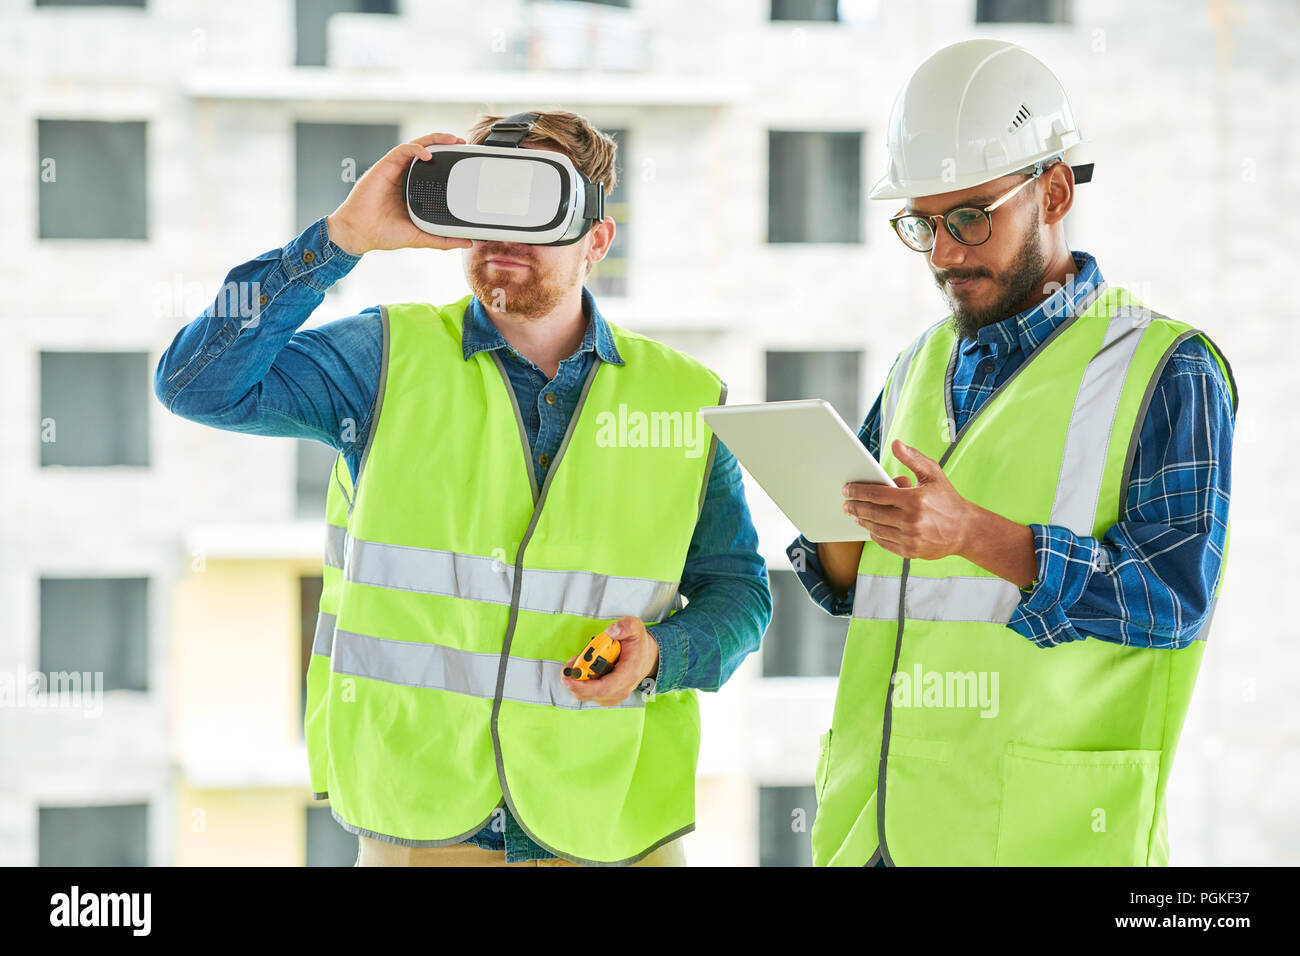 Waist up portrait of two contemporary workers using VR to visualize projects on construction site - Stock Image